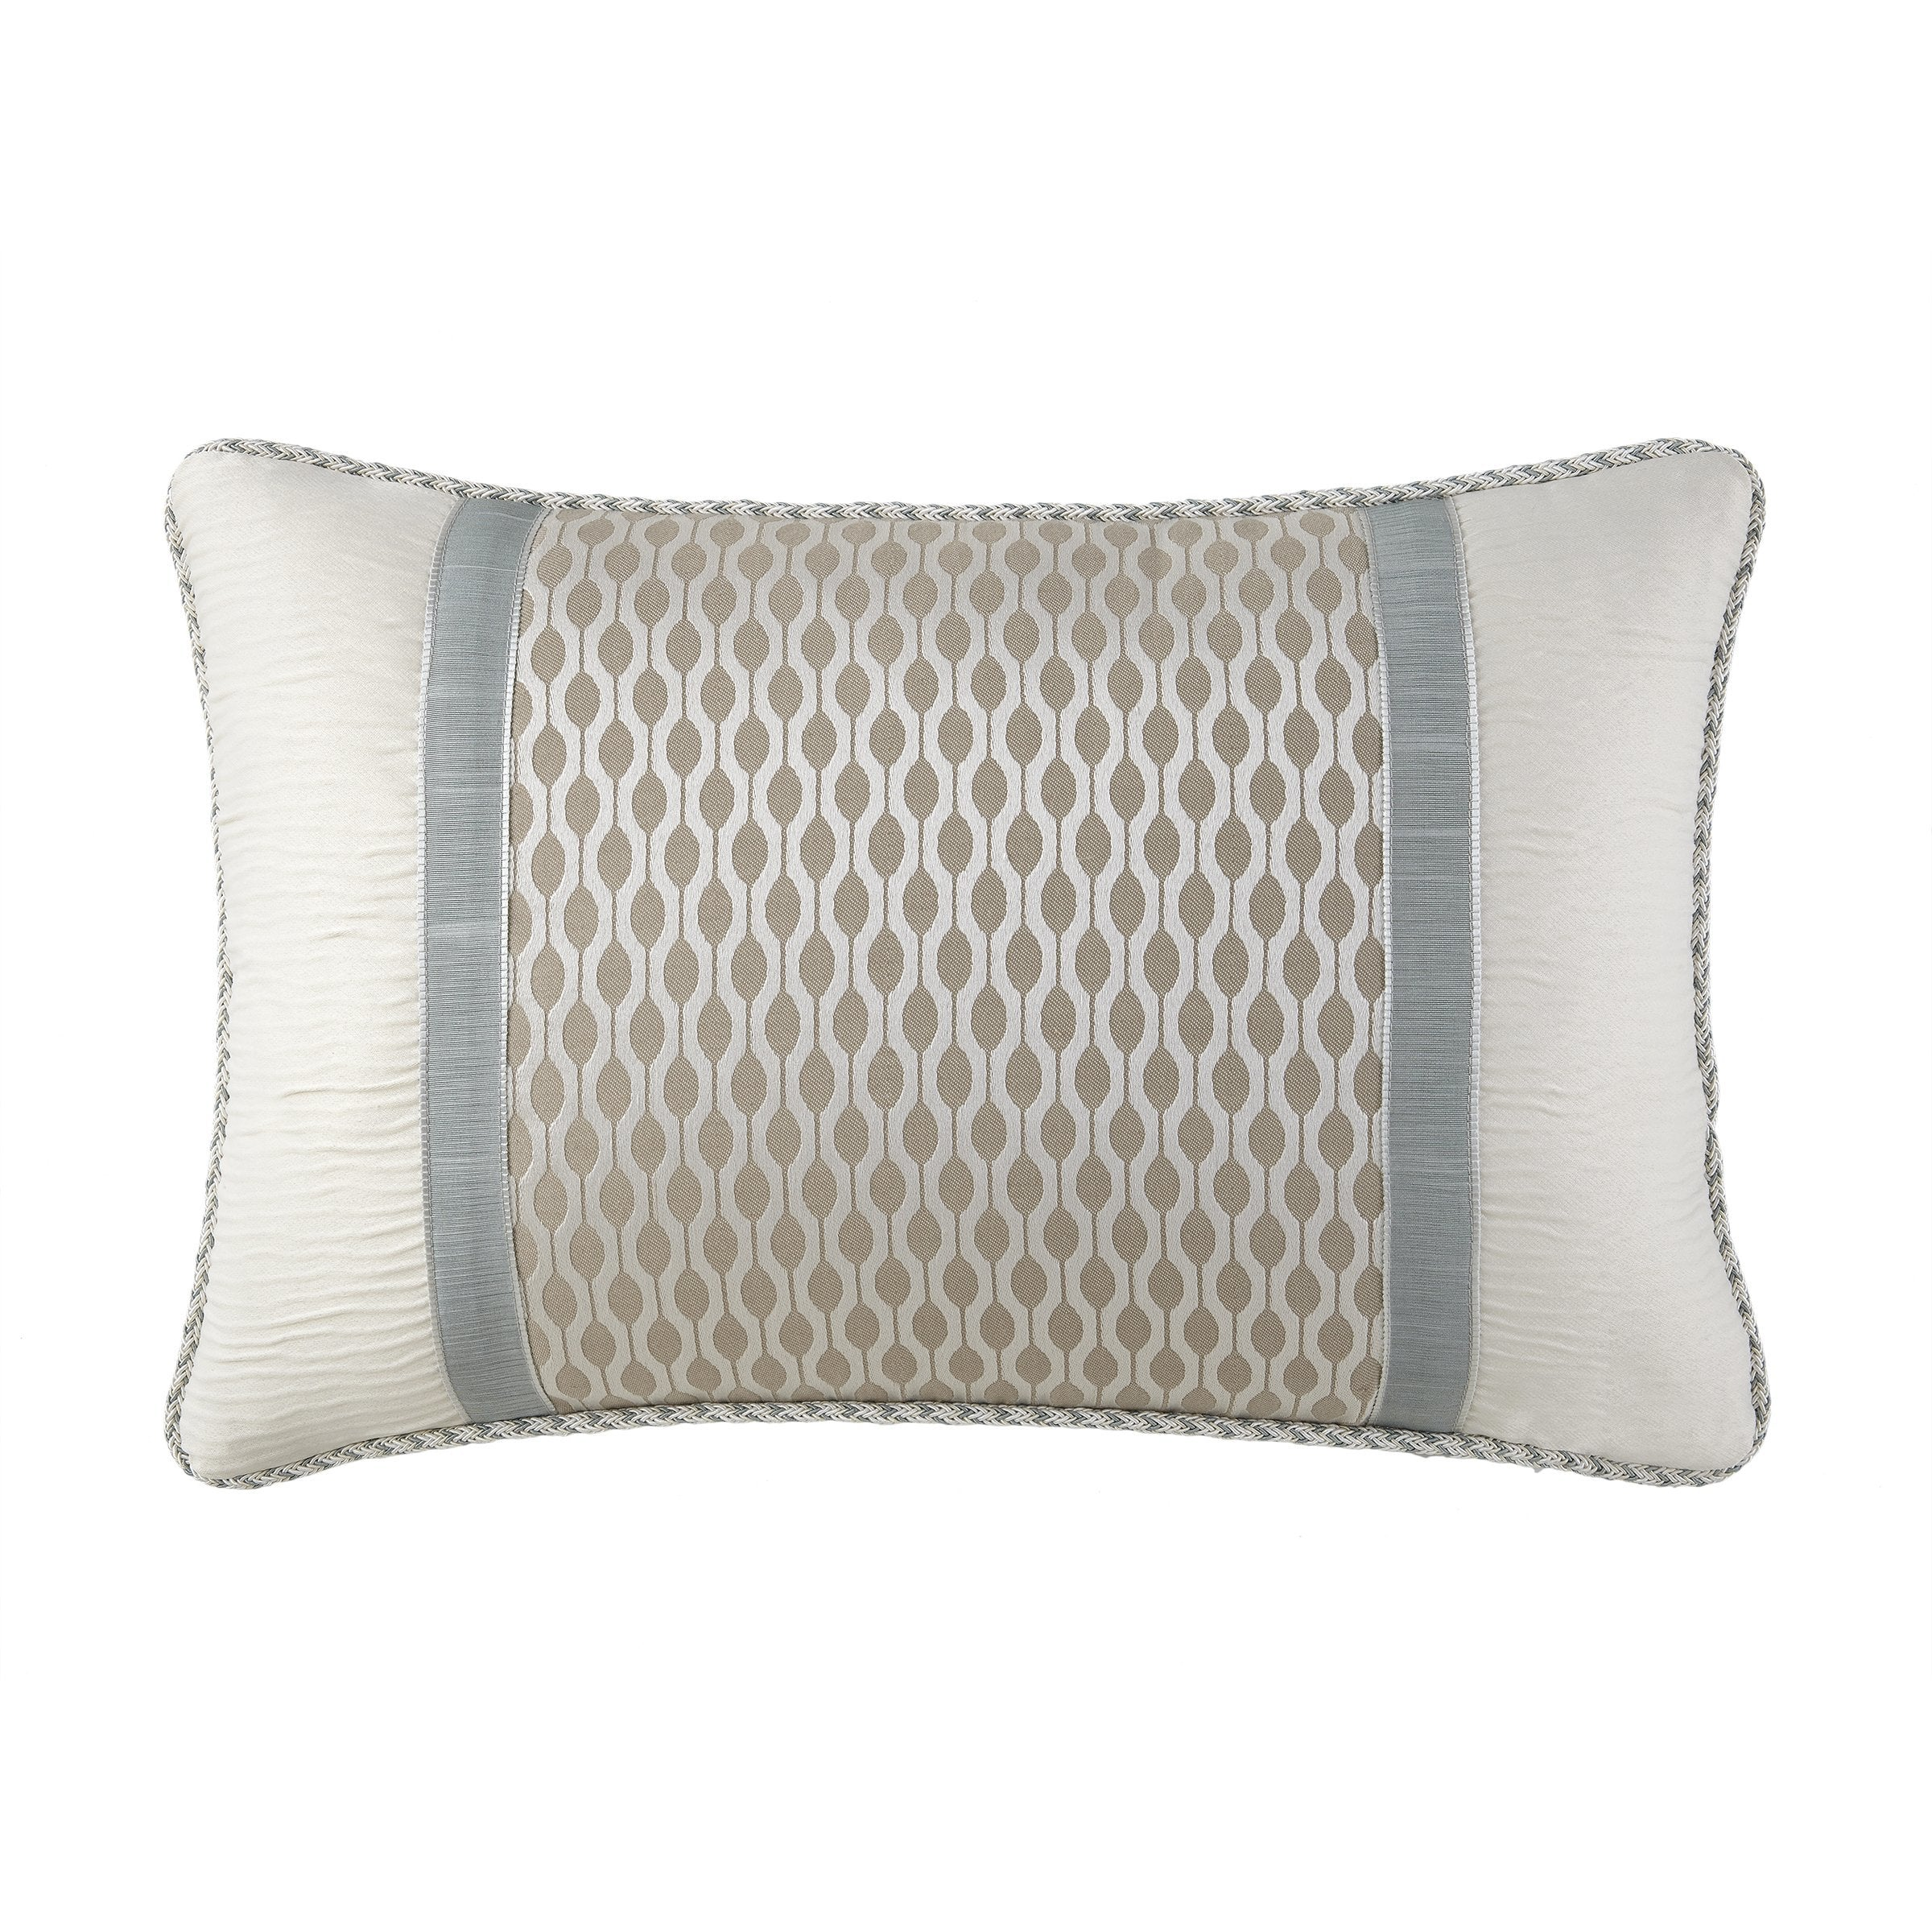 "Jonet Cream/Aqua Dec Pillow 18"" x 12"" Throw Pillows By Waterford"